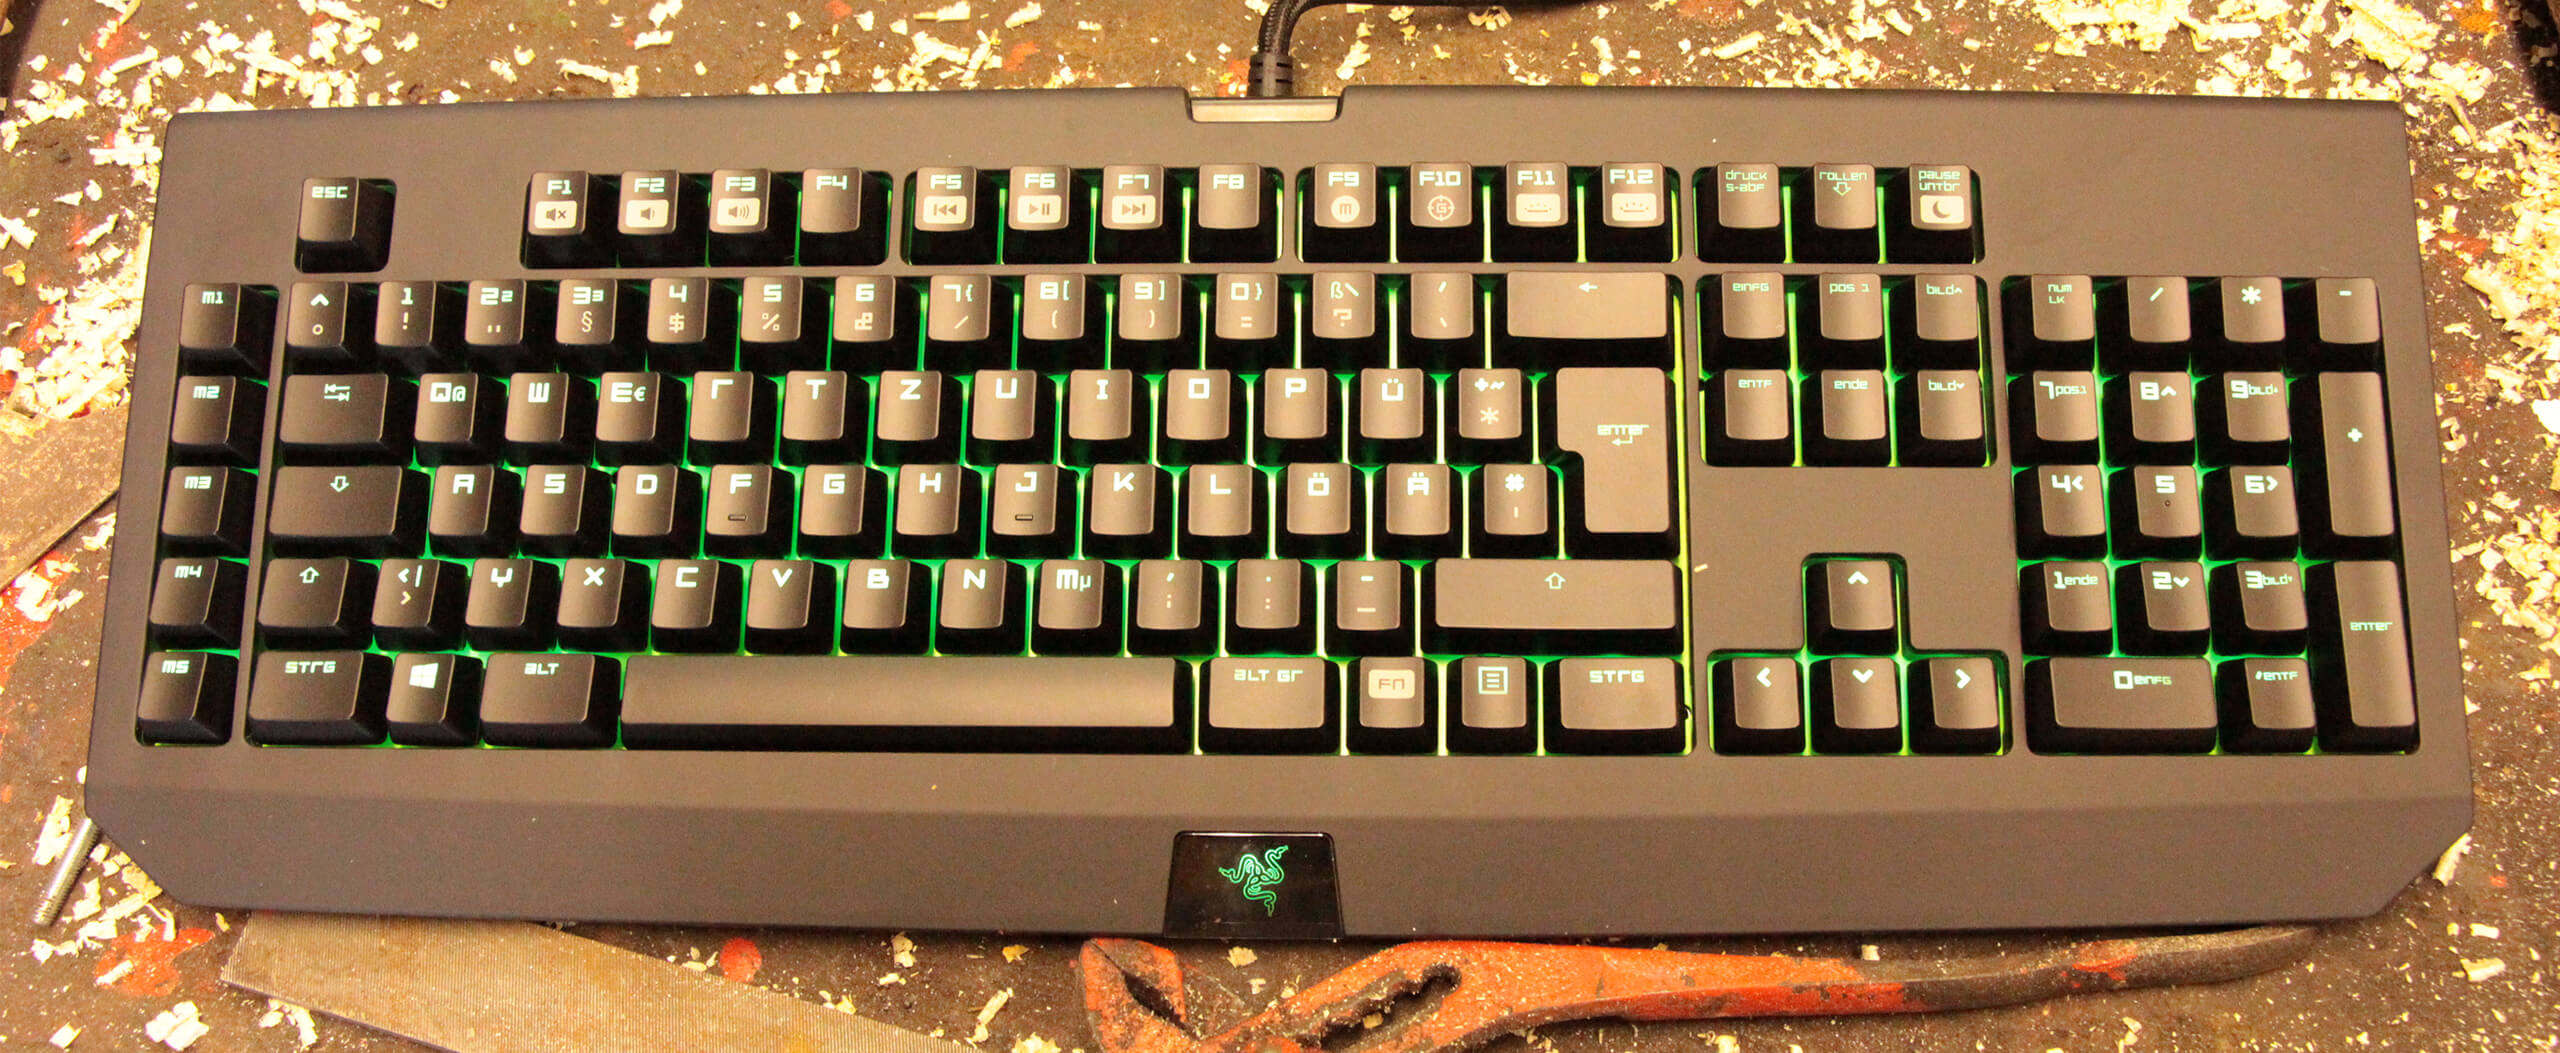 Razer BlackWidow Ultimate 2014 Test - Outdoor